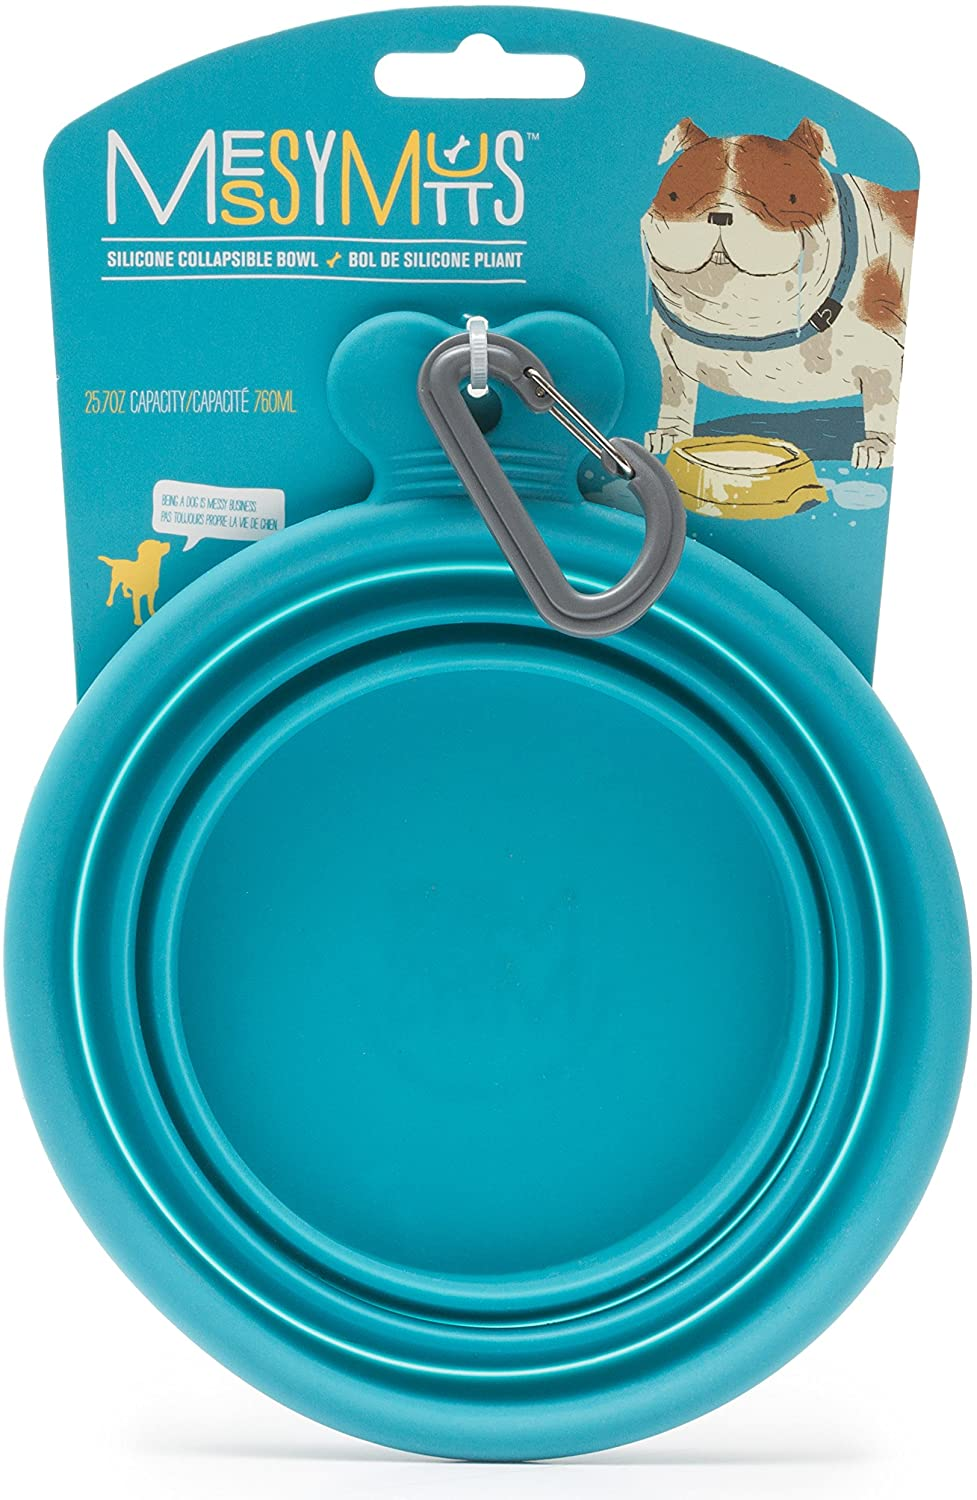 Messy Mutts Silicone Collapsible Dog Bowl, Blue, Small